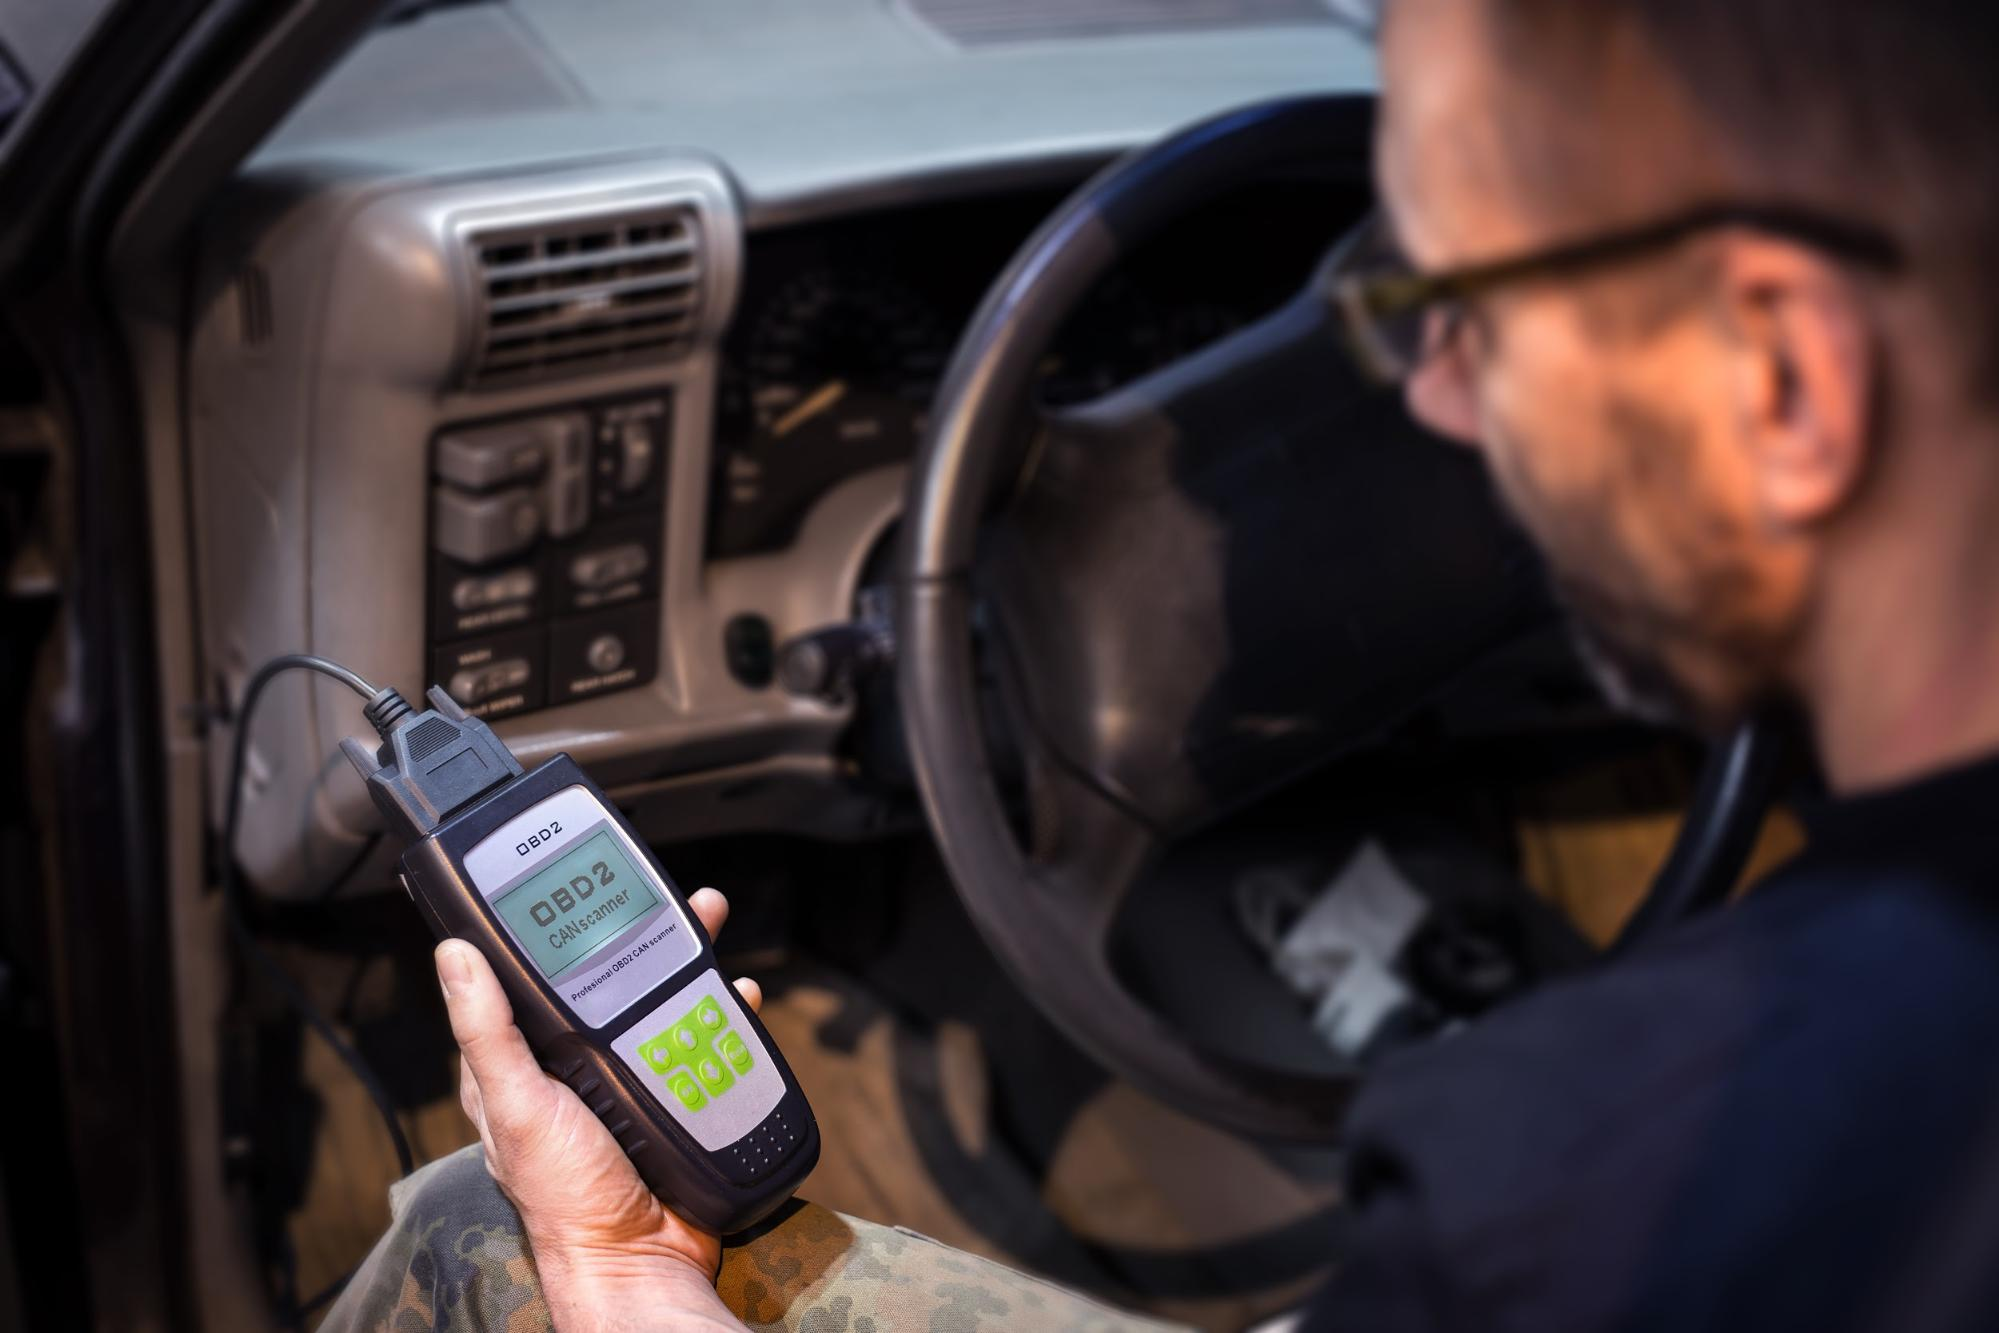 A man extracting vehicle data from an OBDII port